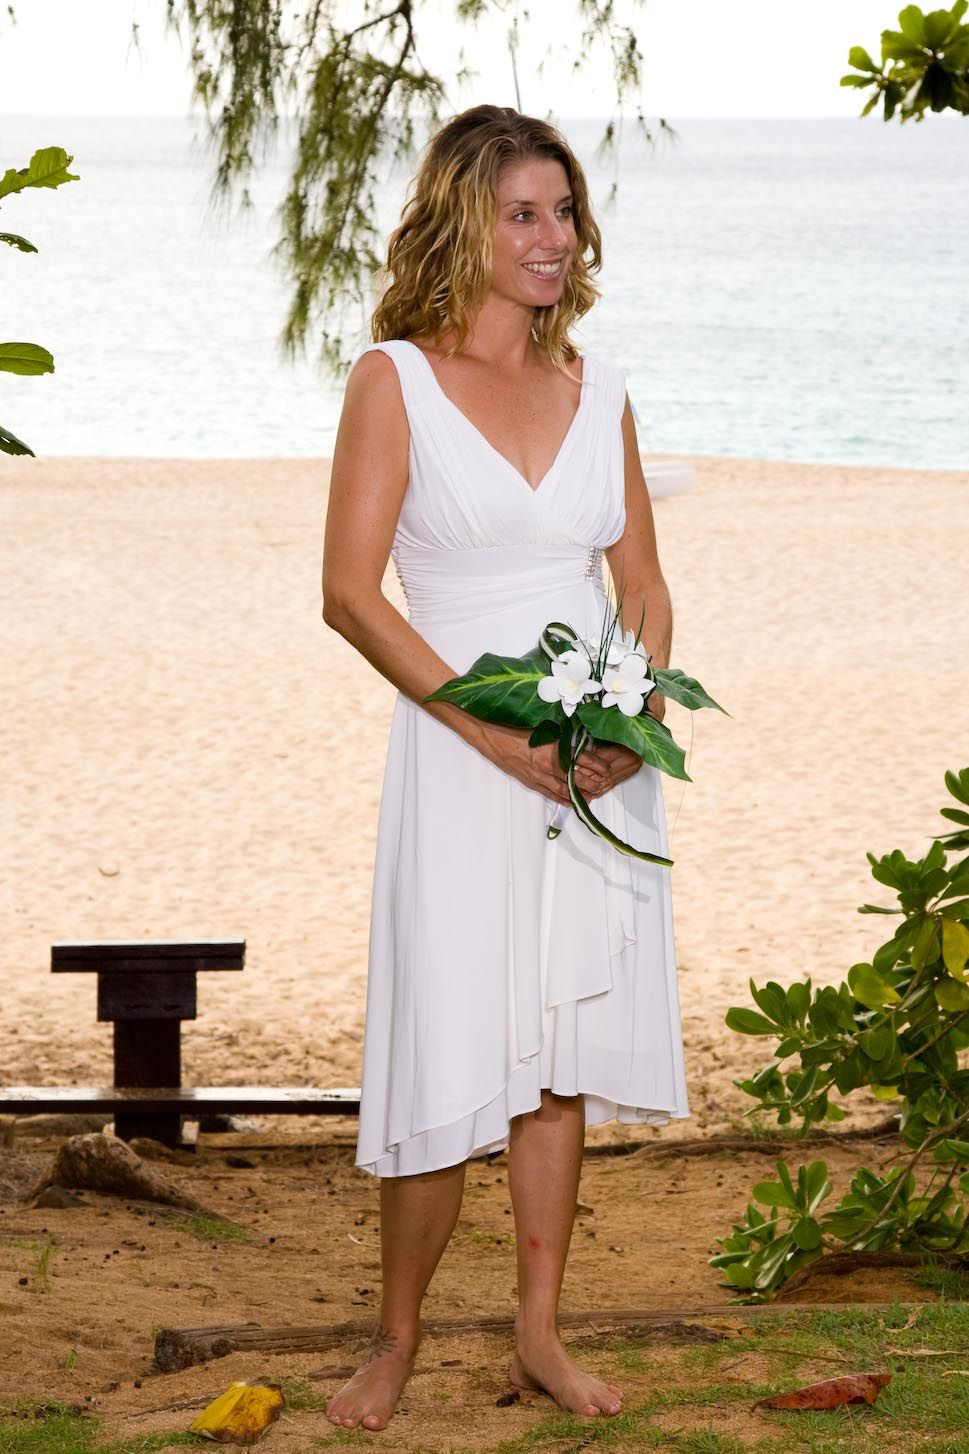 Casual Beach bridesmaid dresses photo